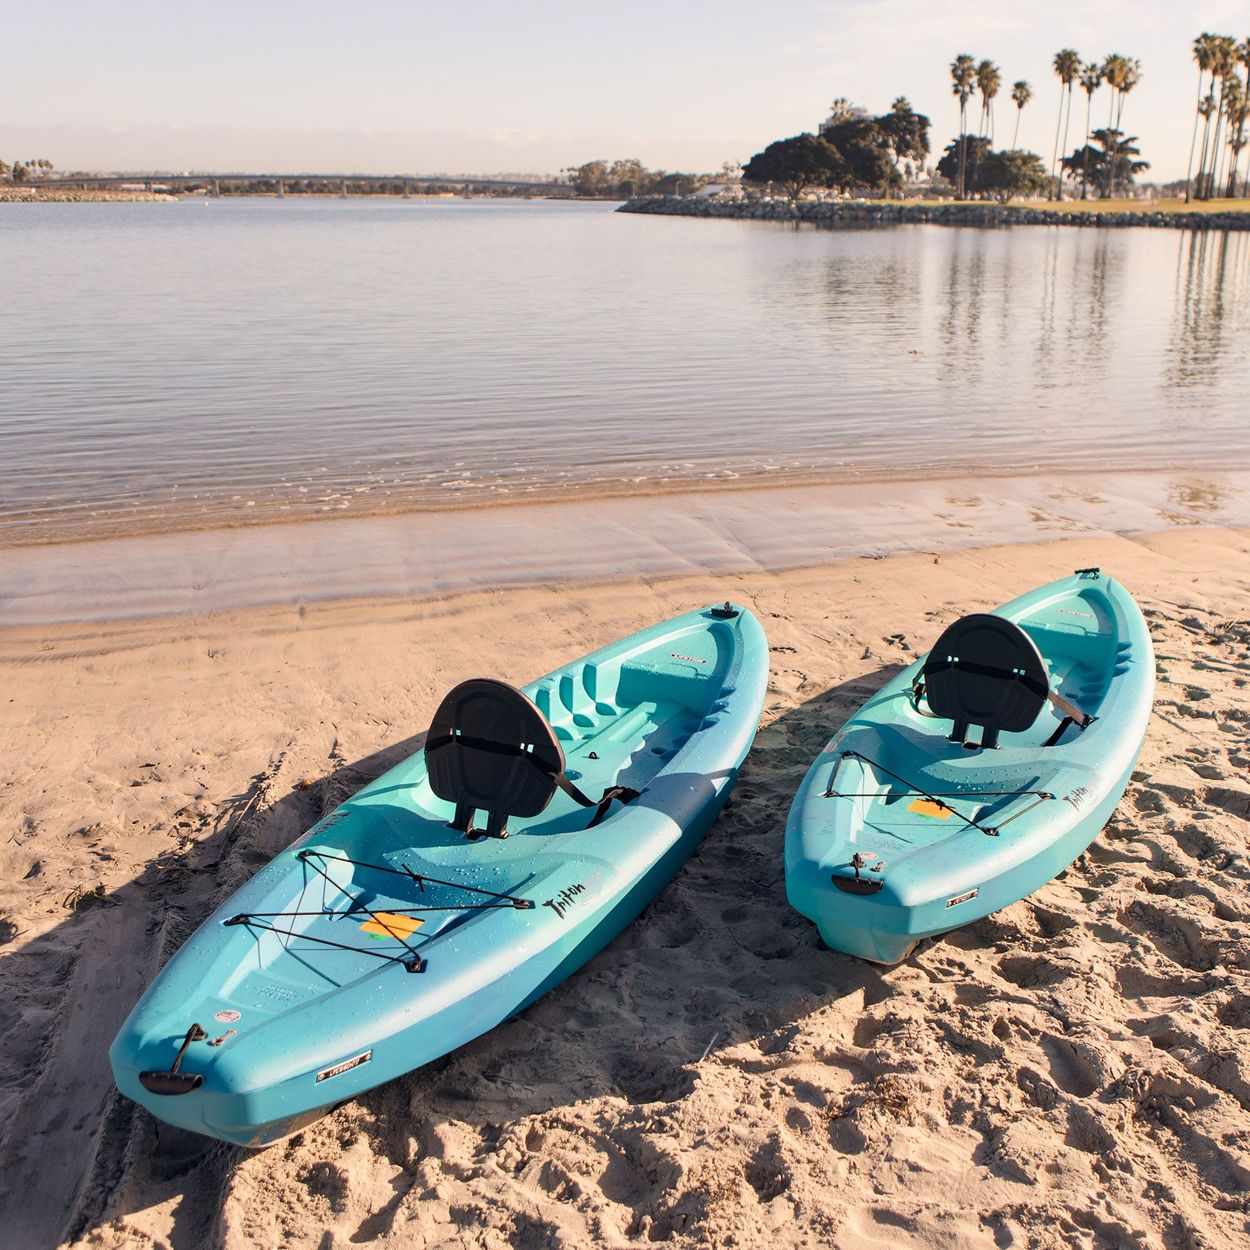 Two kayaks on a beach facing away from the camera and the water in the background with palm trees and other trees on an island in the far background.